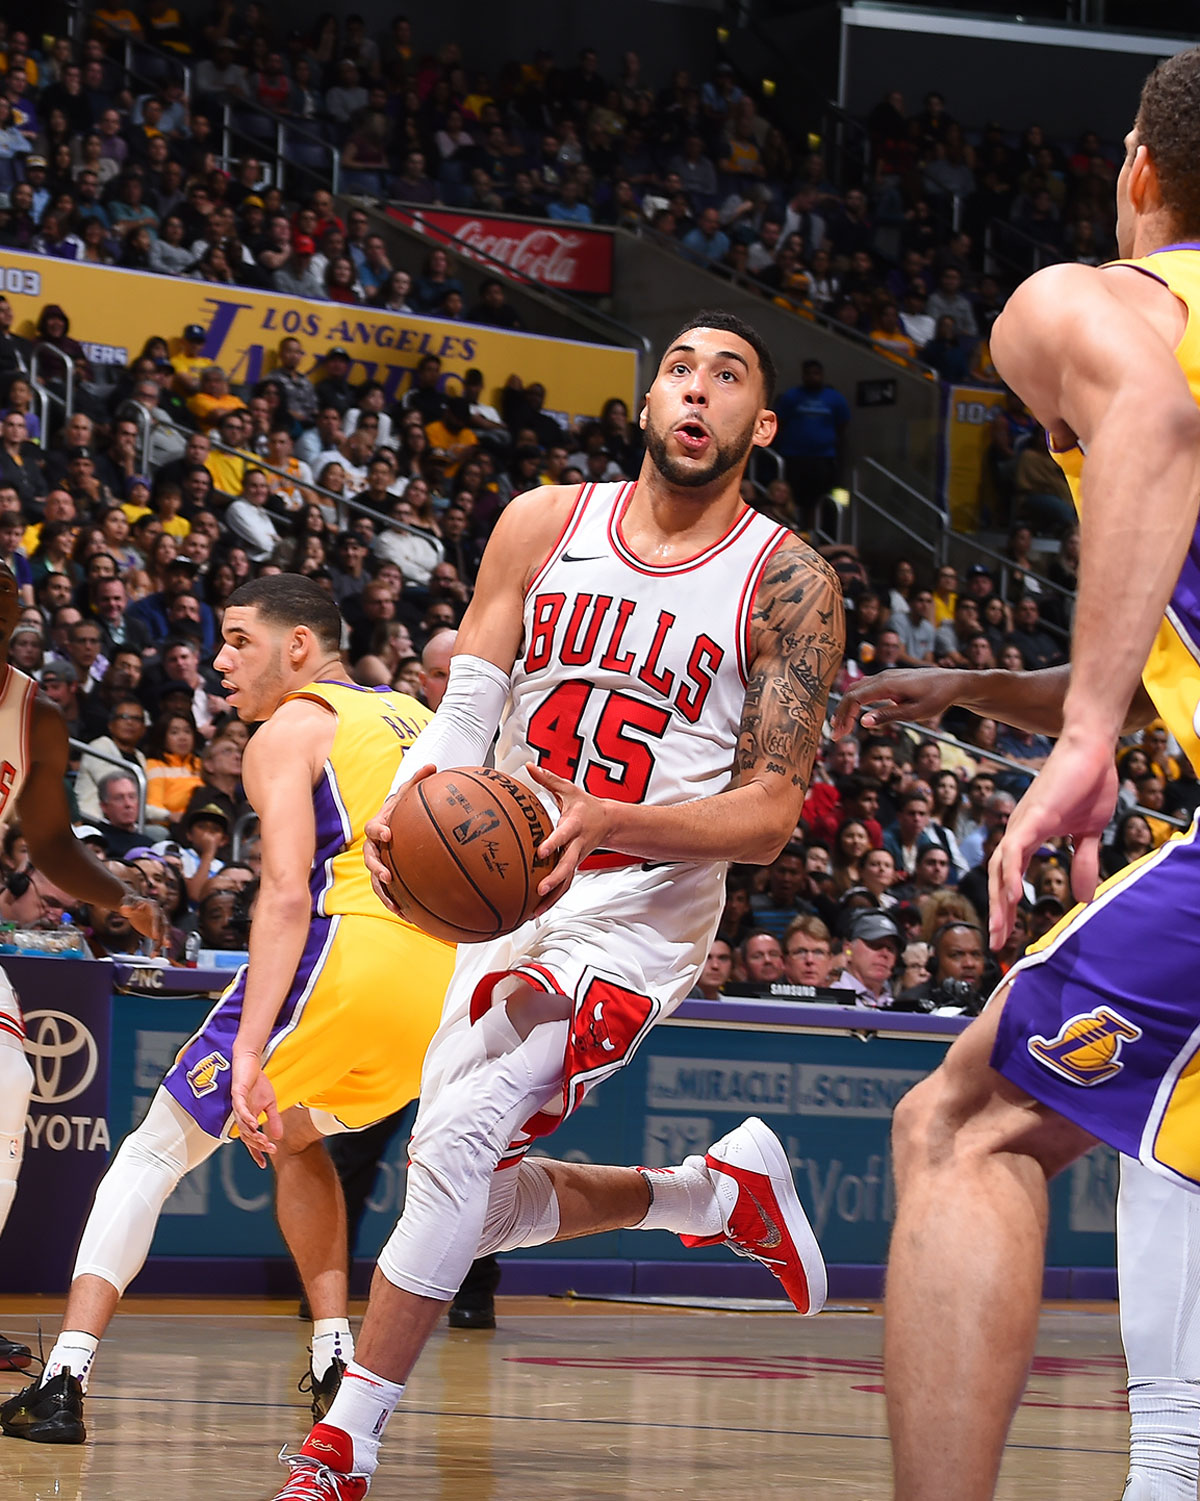 Denzel Valentine #45 of the Chicago Bulls handles the ball against the Los Angeles Lakers on November 21, 2017 at STAPLES Center in Los Angeles, California.